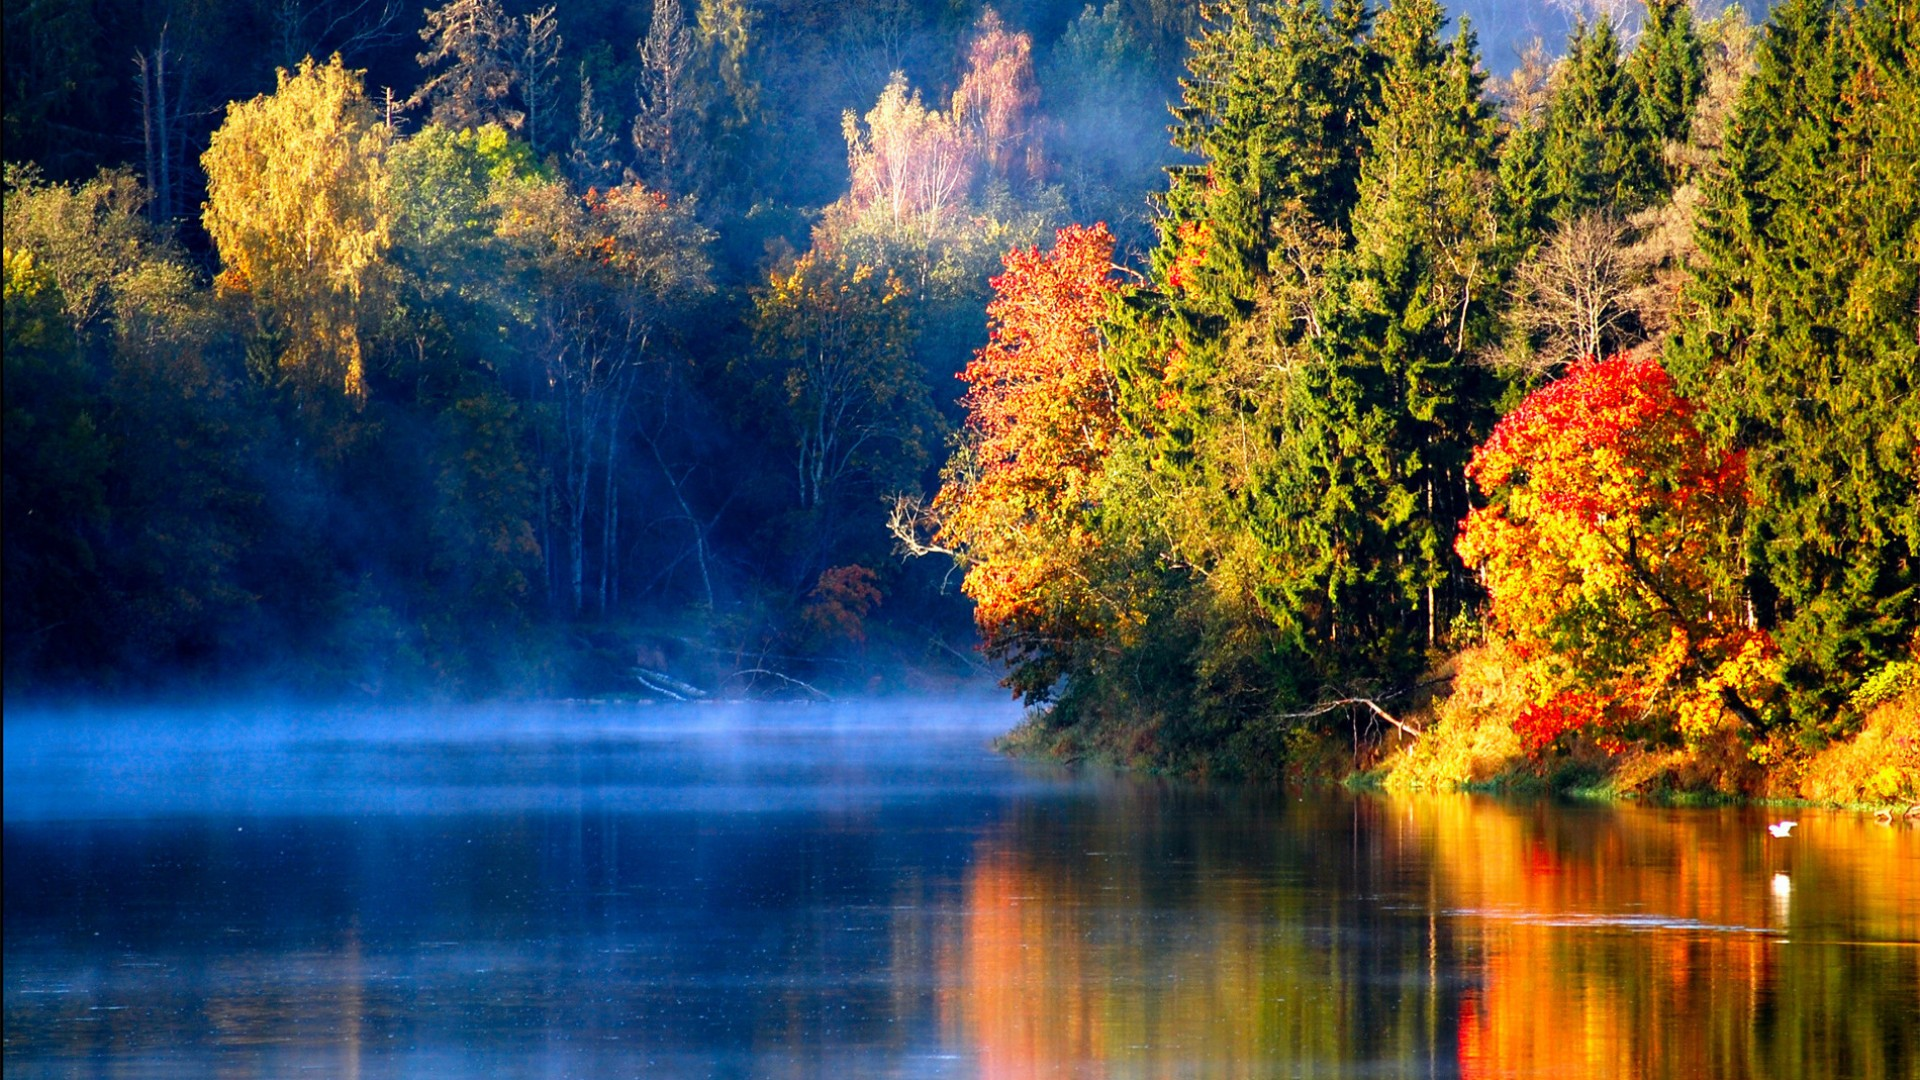 River Nature Wallpapers HD Pictures One HD Wallpaper 1920x1080